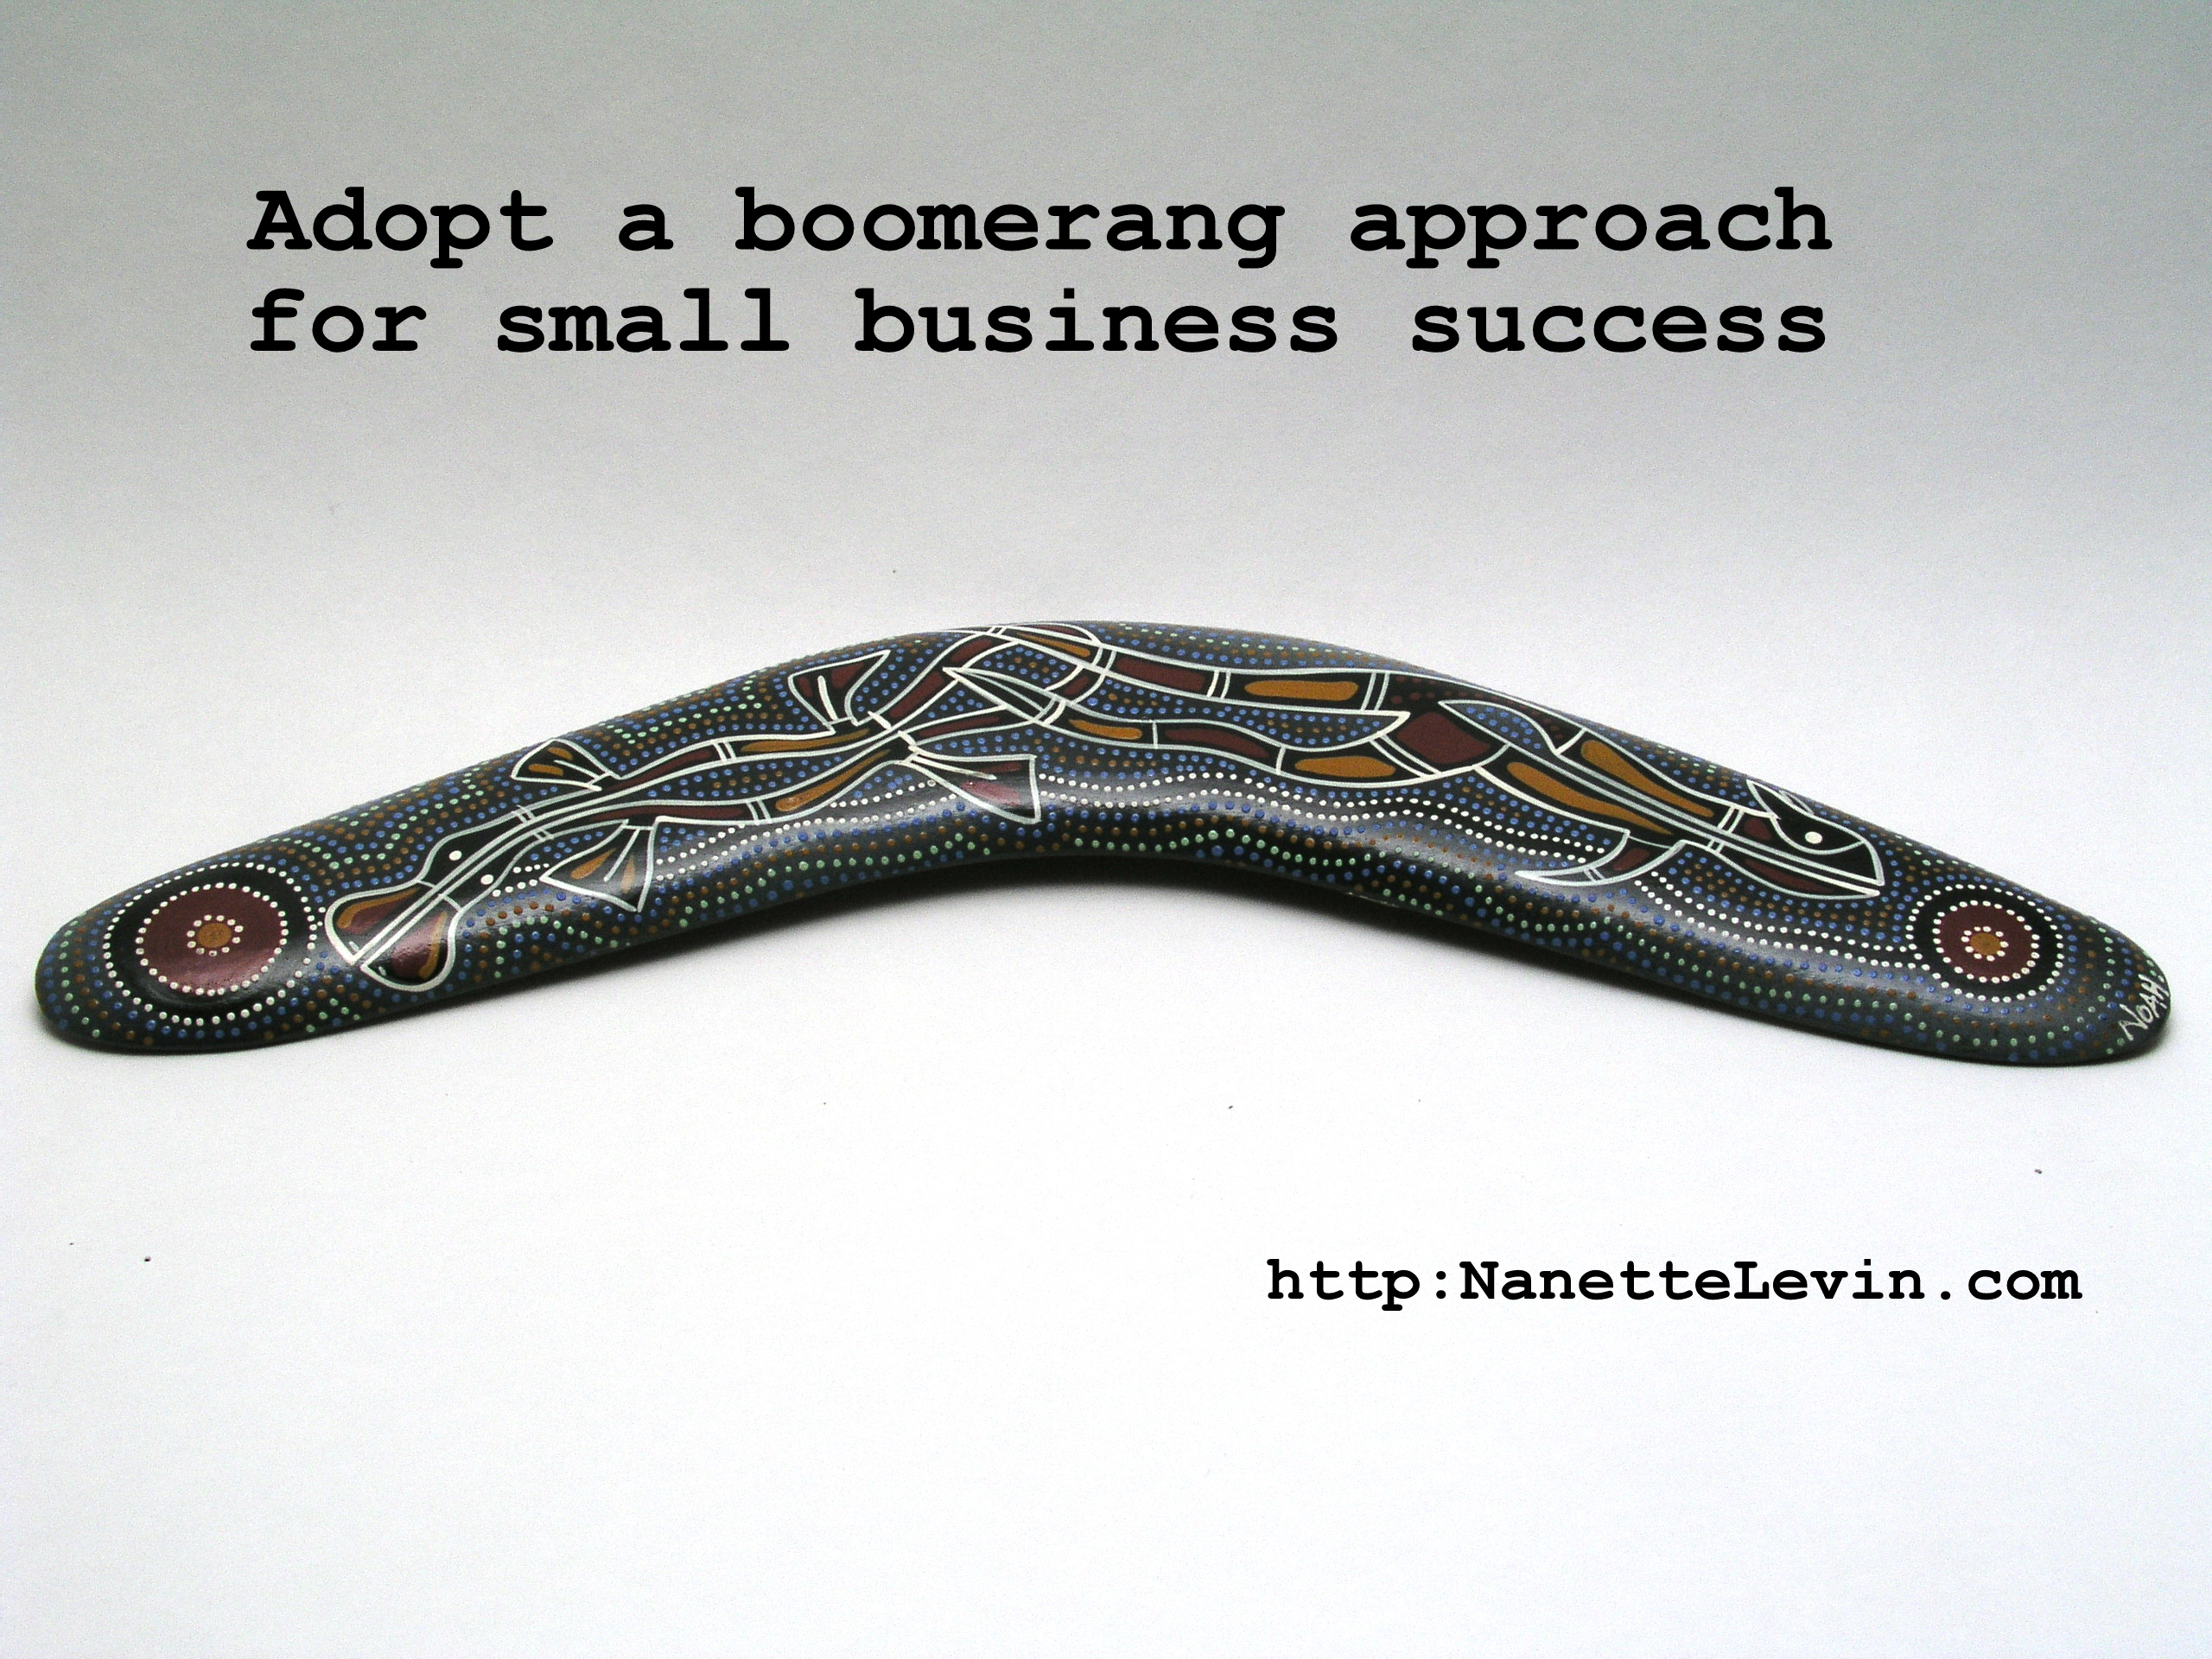 Small business success can boomerang when you're creative